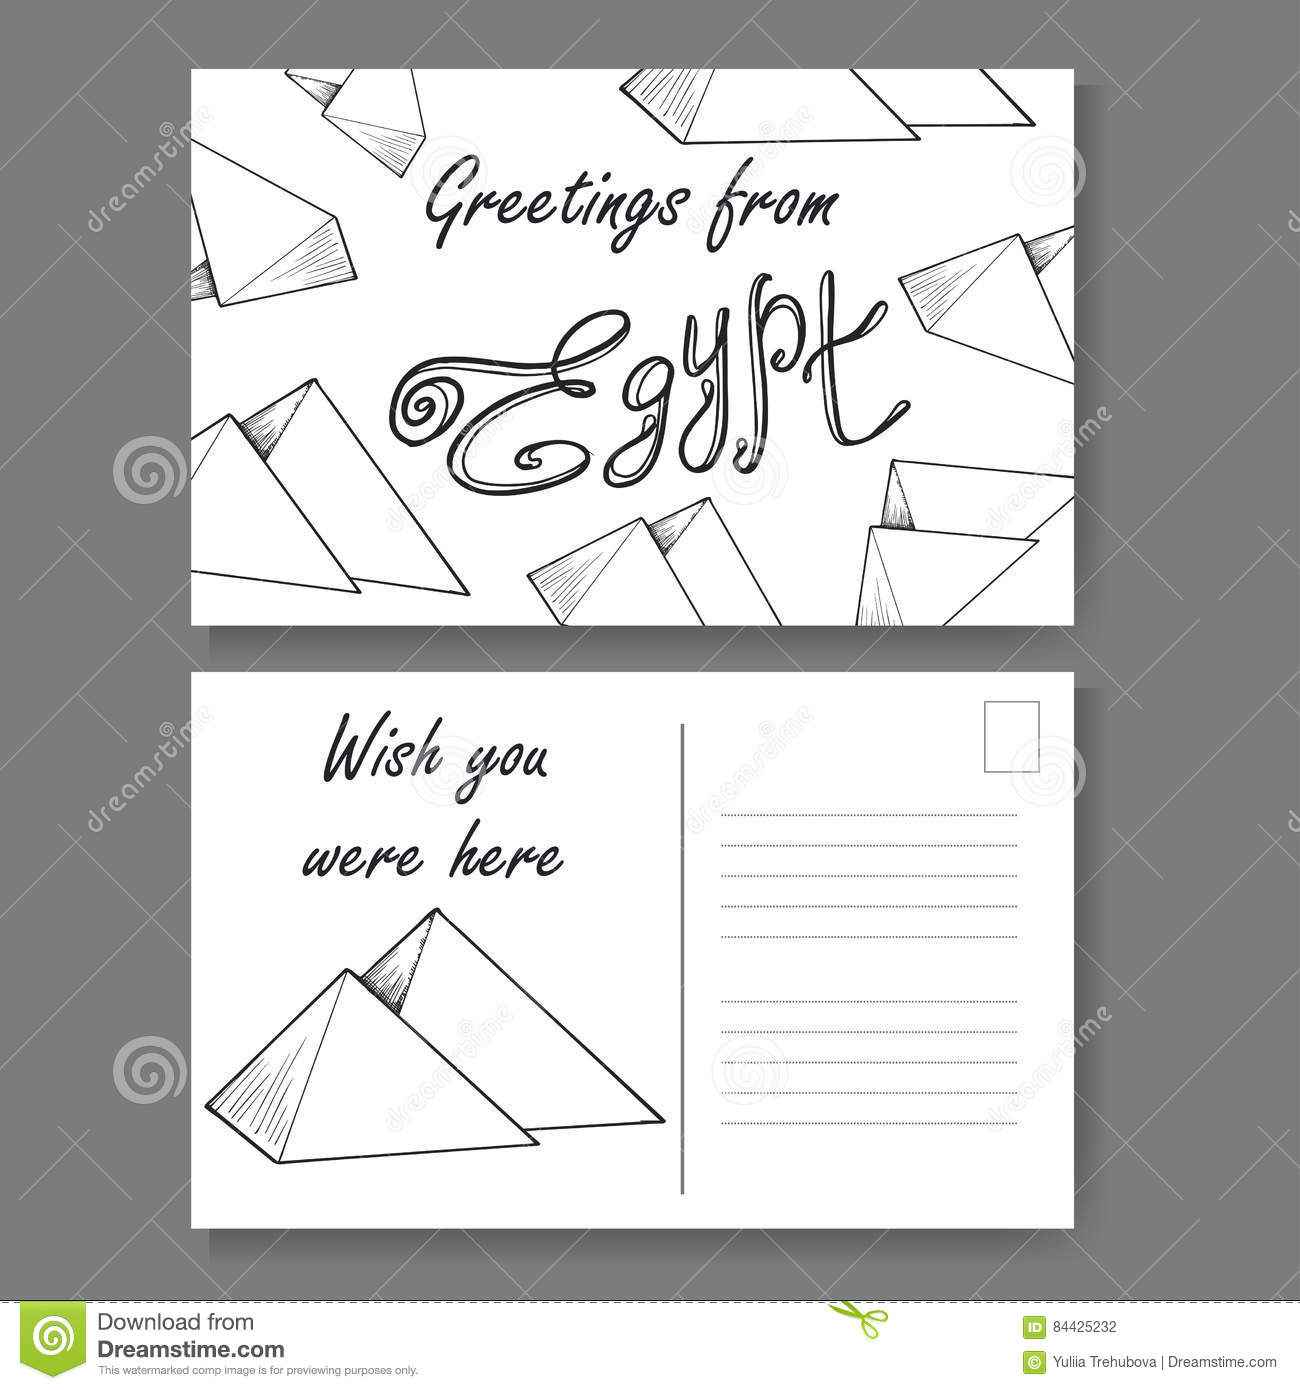 Postcard from cairo hand drawn lettering and sketch greetings from postcard from cairo hand drawn lettering and sketch greetings from egypt vector illestration architecture culture kristyandbryce Choice Image